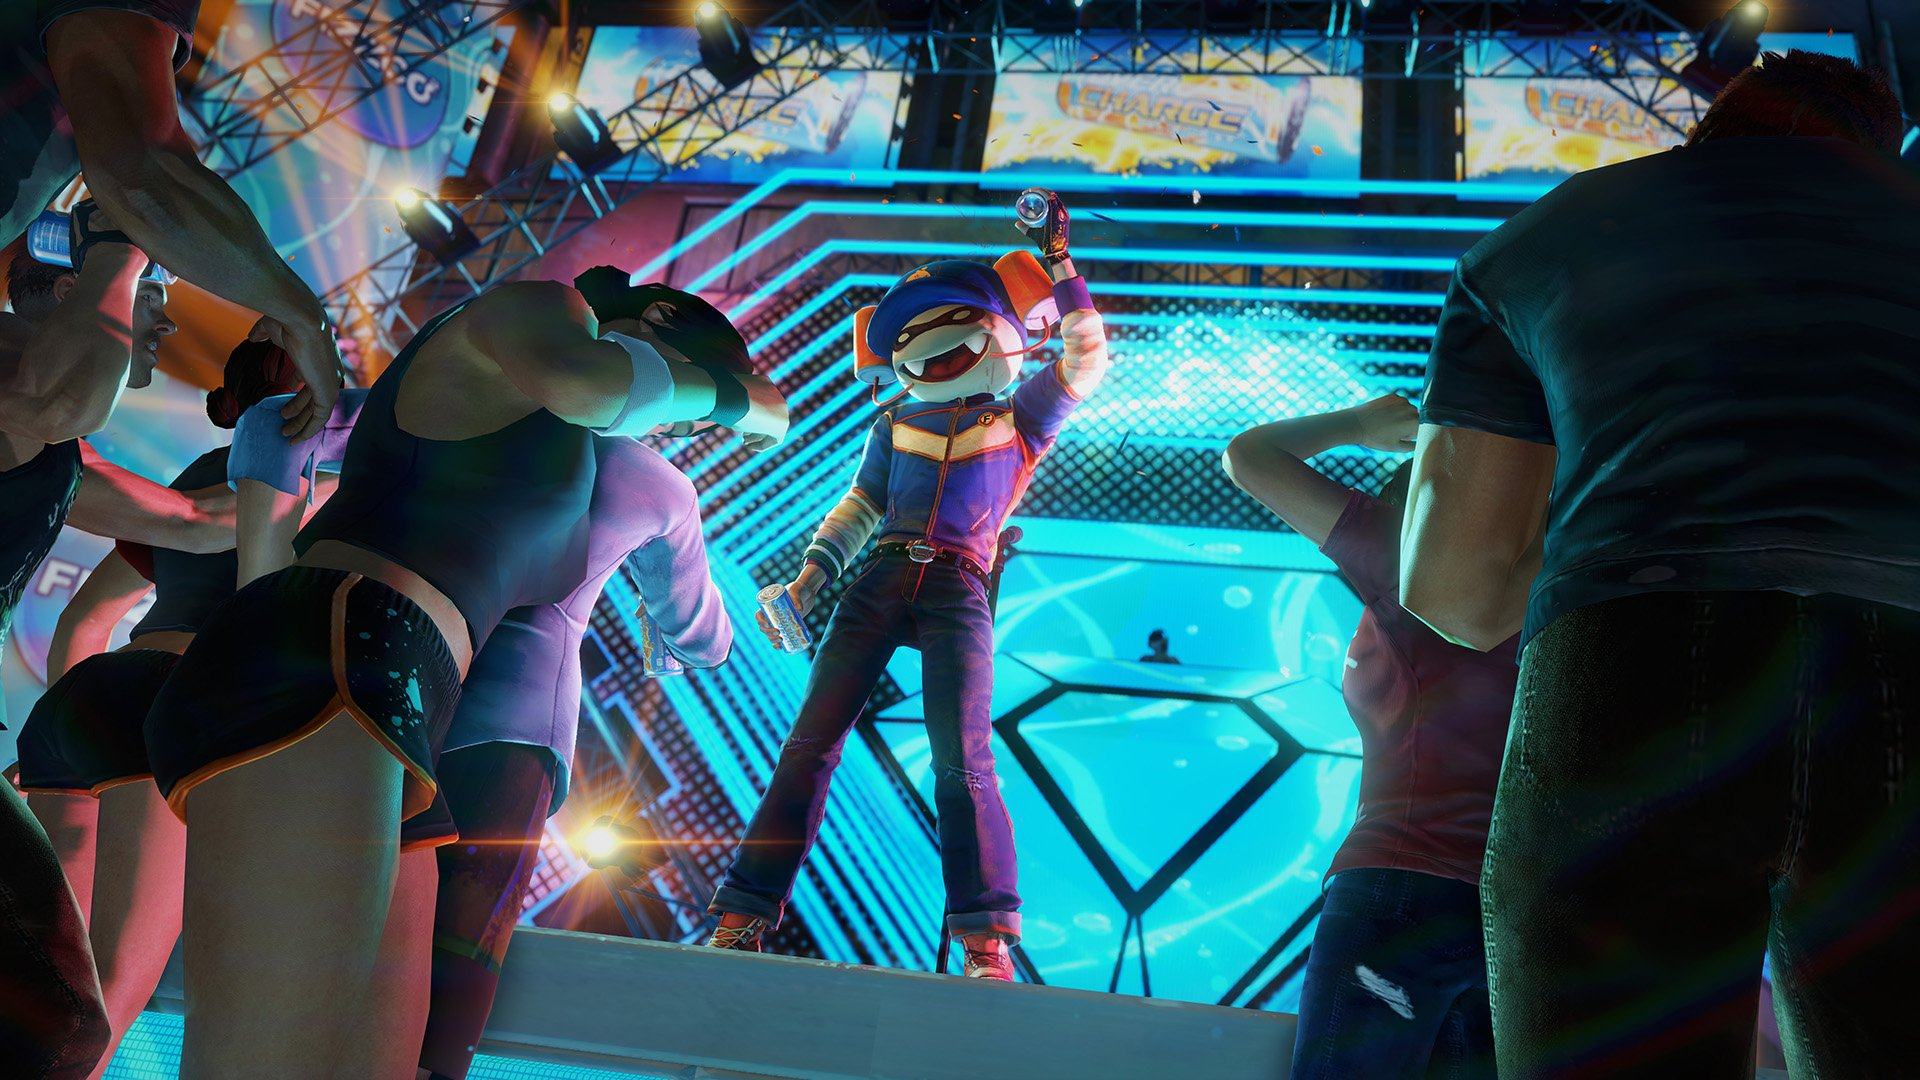 sunset-overdrive-cinematic-horror-night-fizzie-jpg